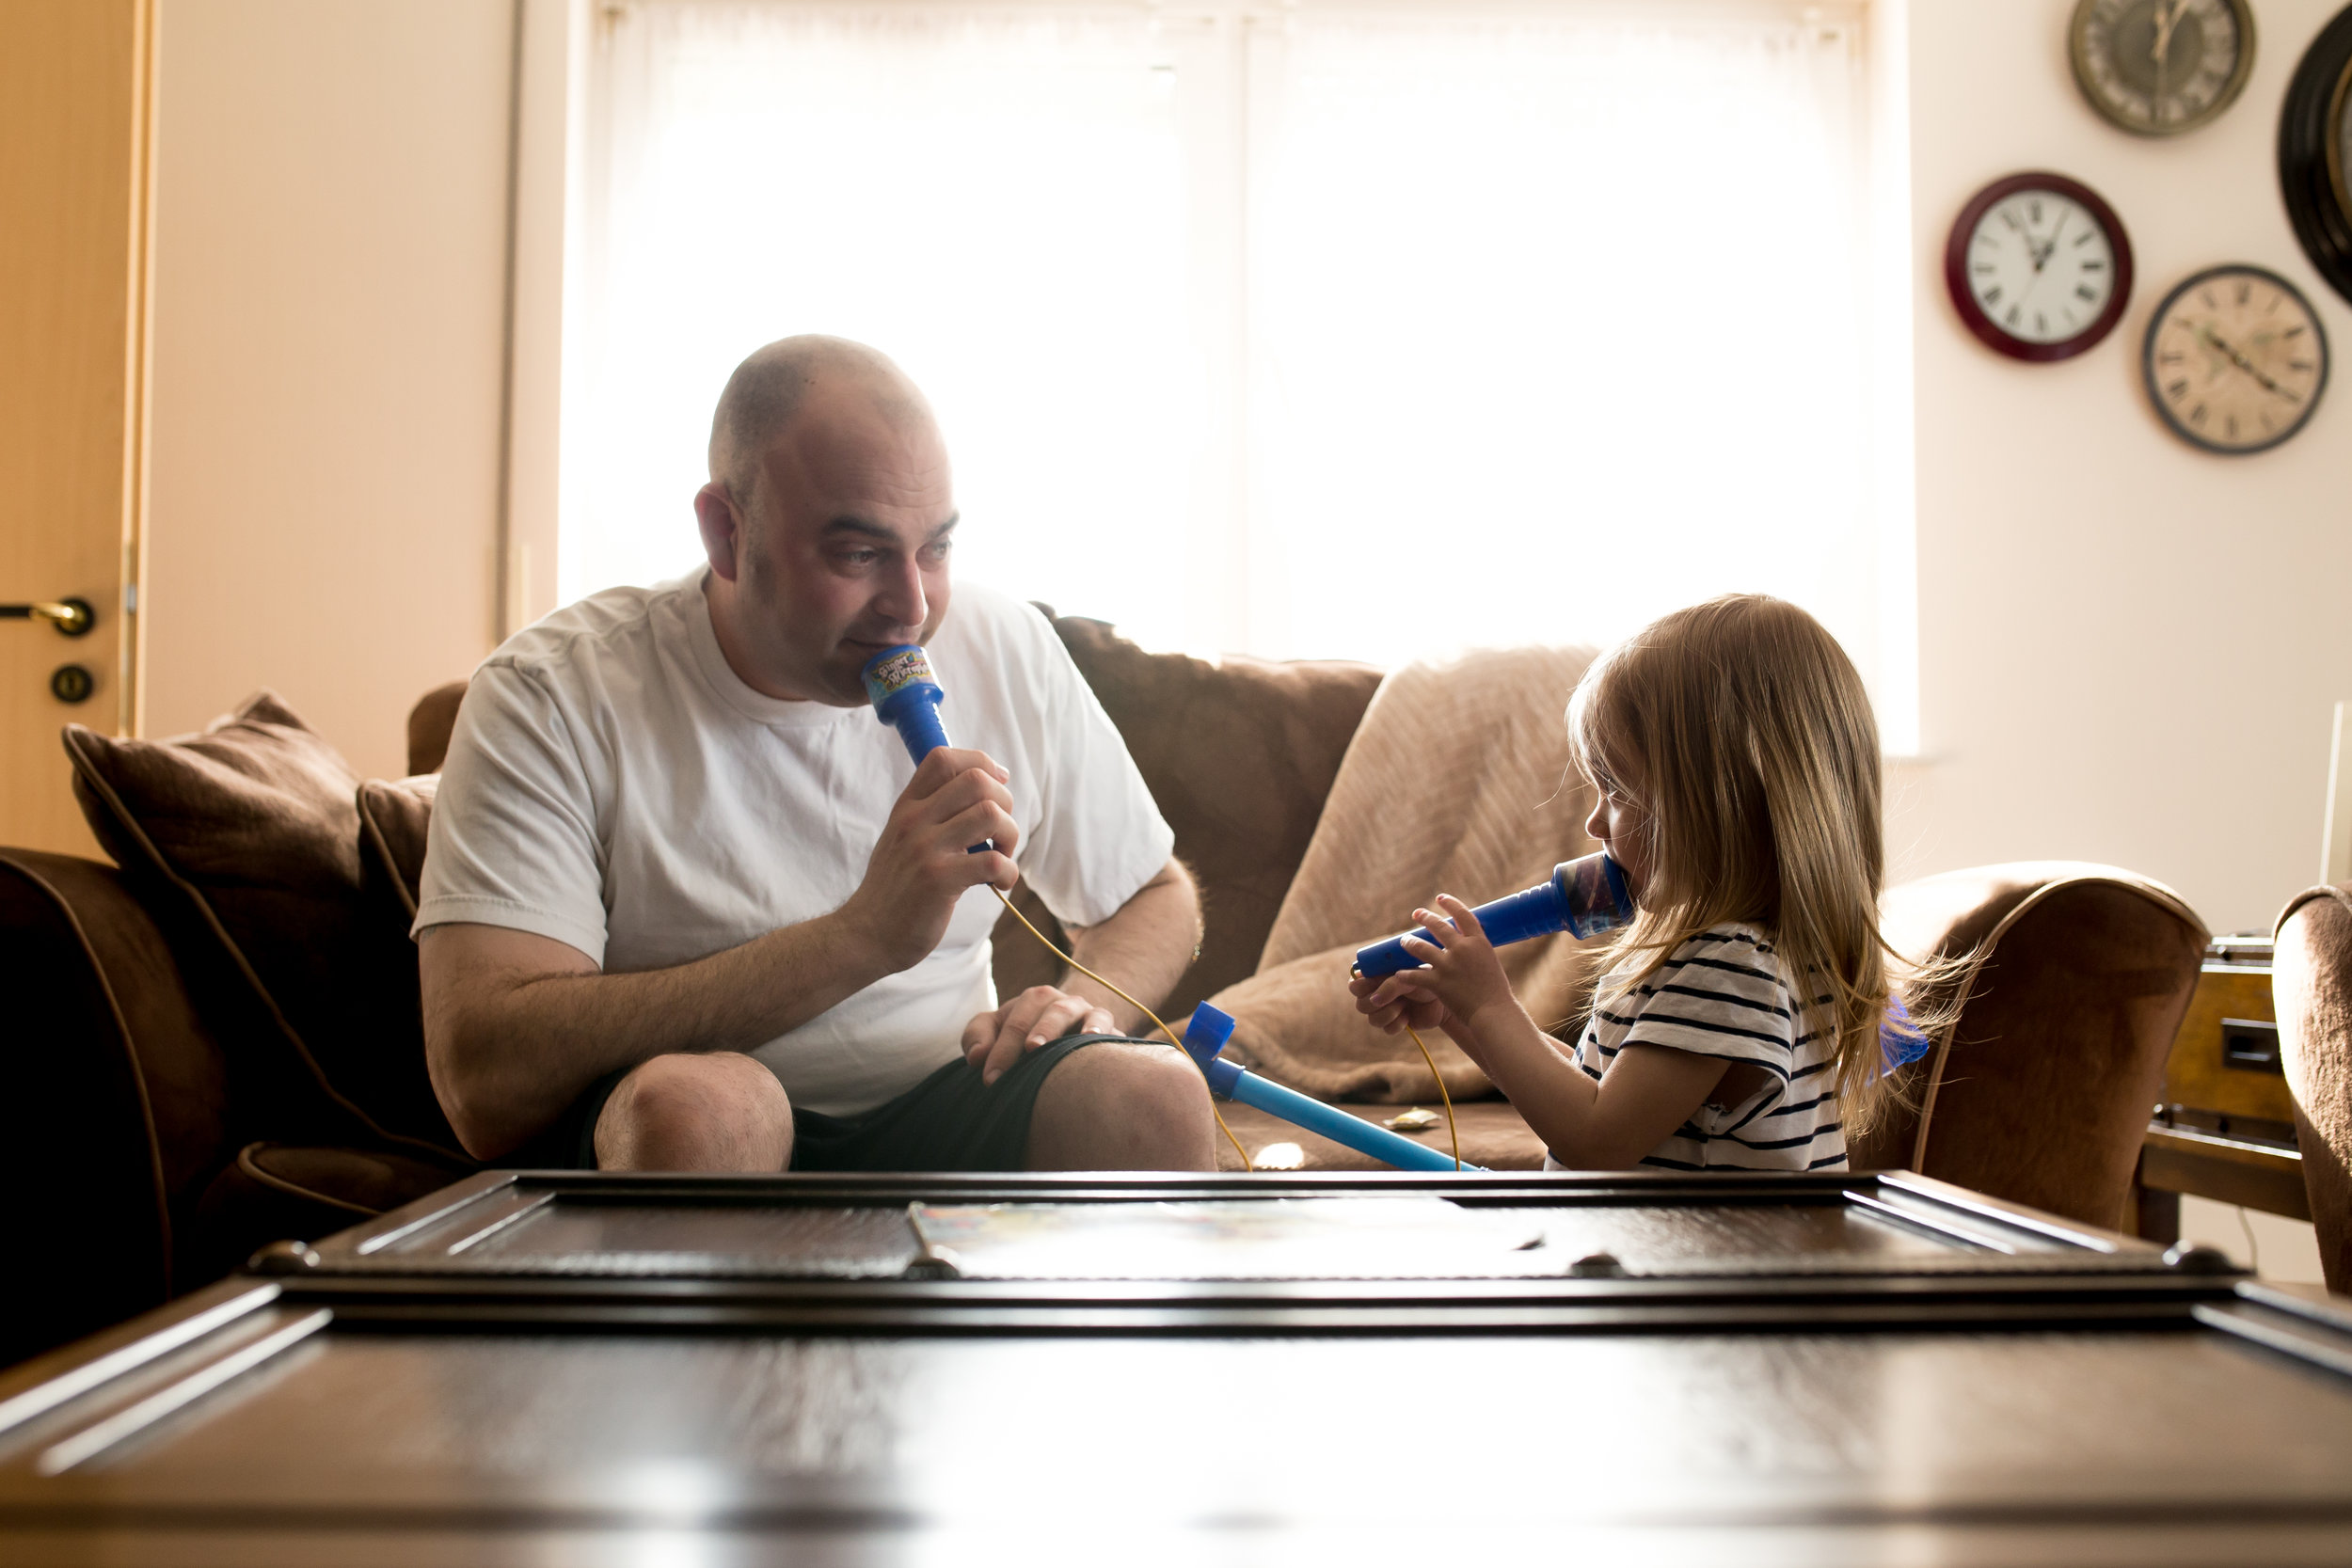 Dad and daughter sing with toy microphones in sunshine